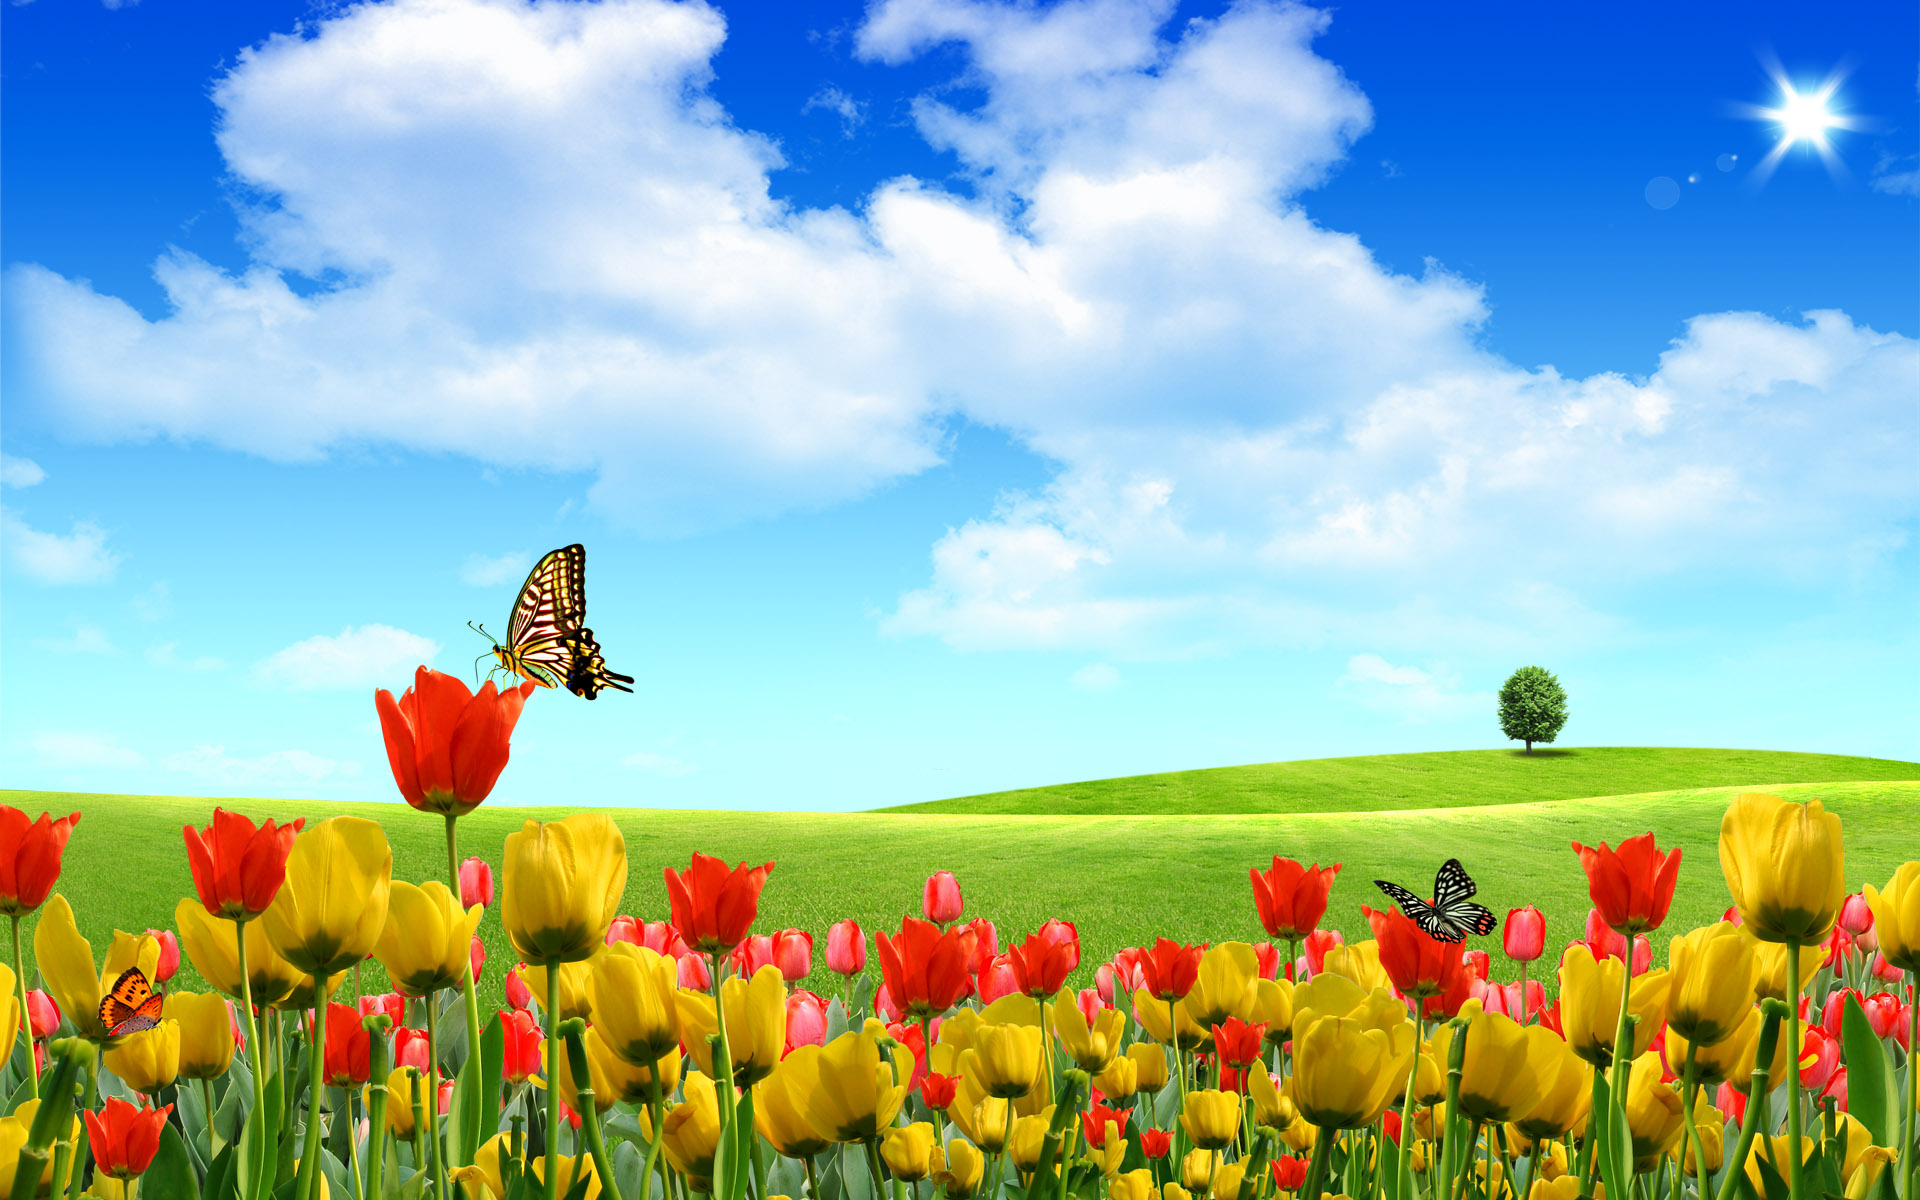 New Windows XP Desktop Wallpapers FREE on Latorocom 1920x1200